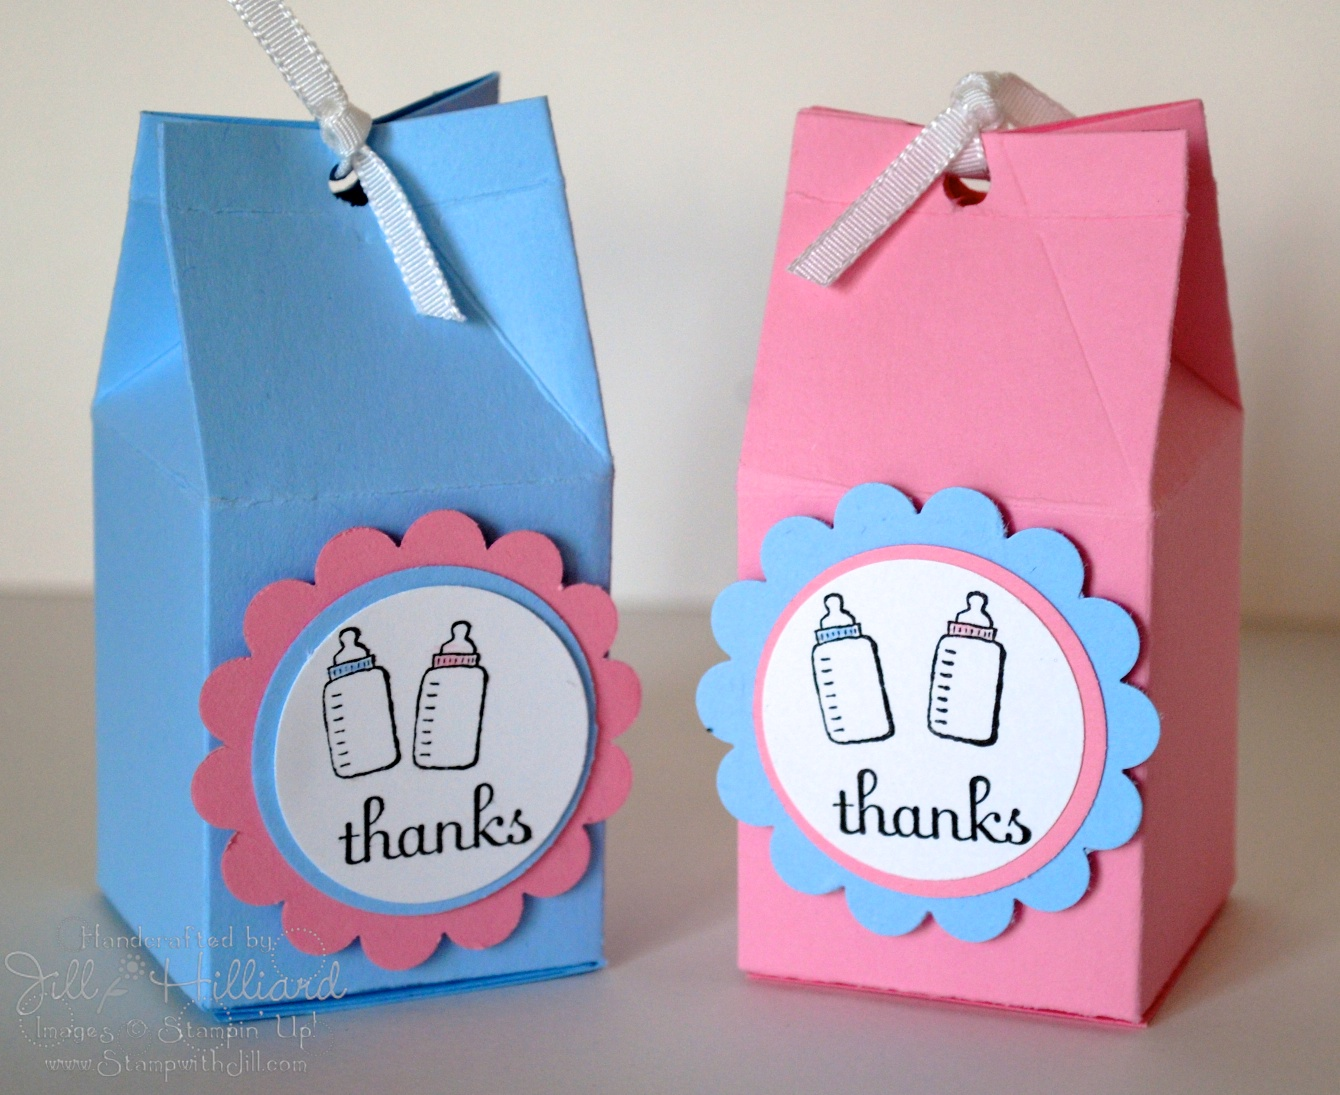 Jill's Card Creations: Baby Shower Favors